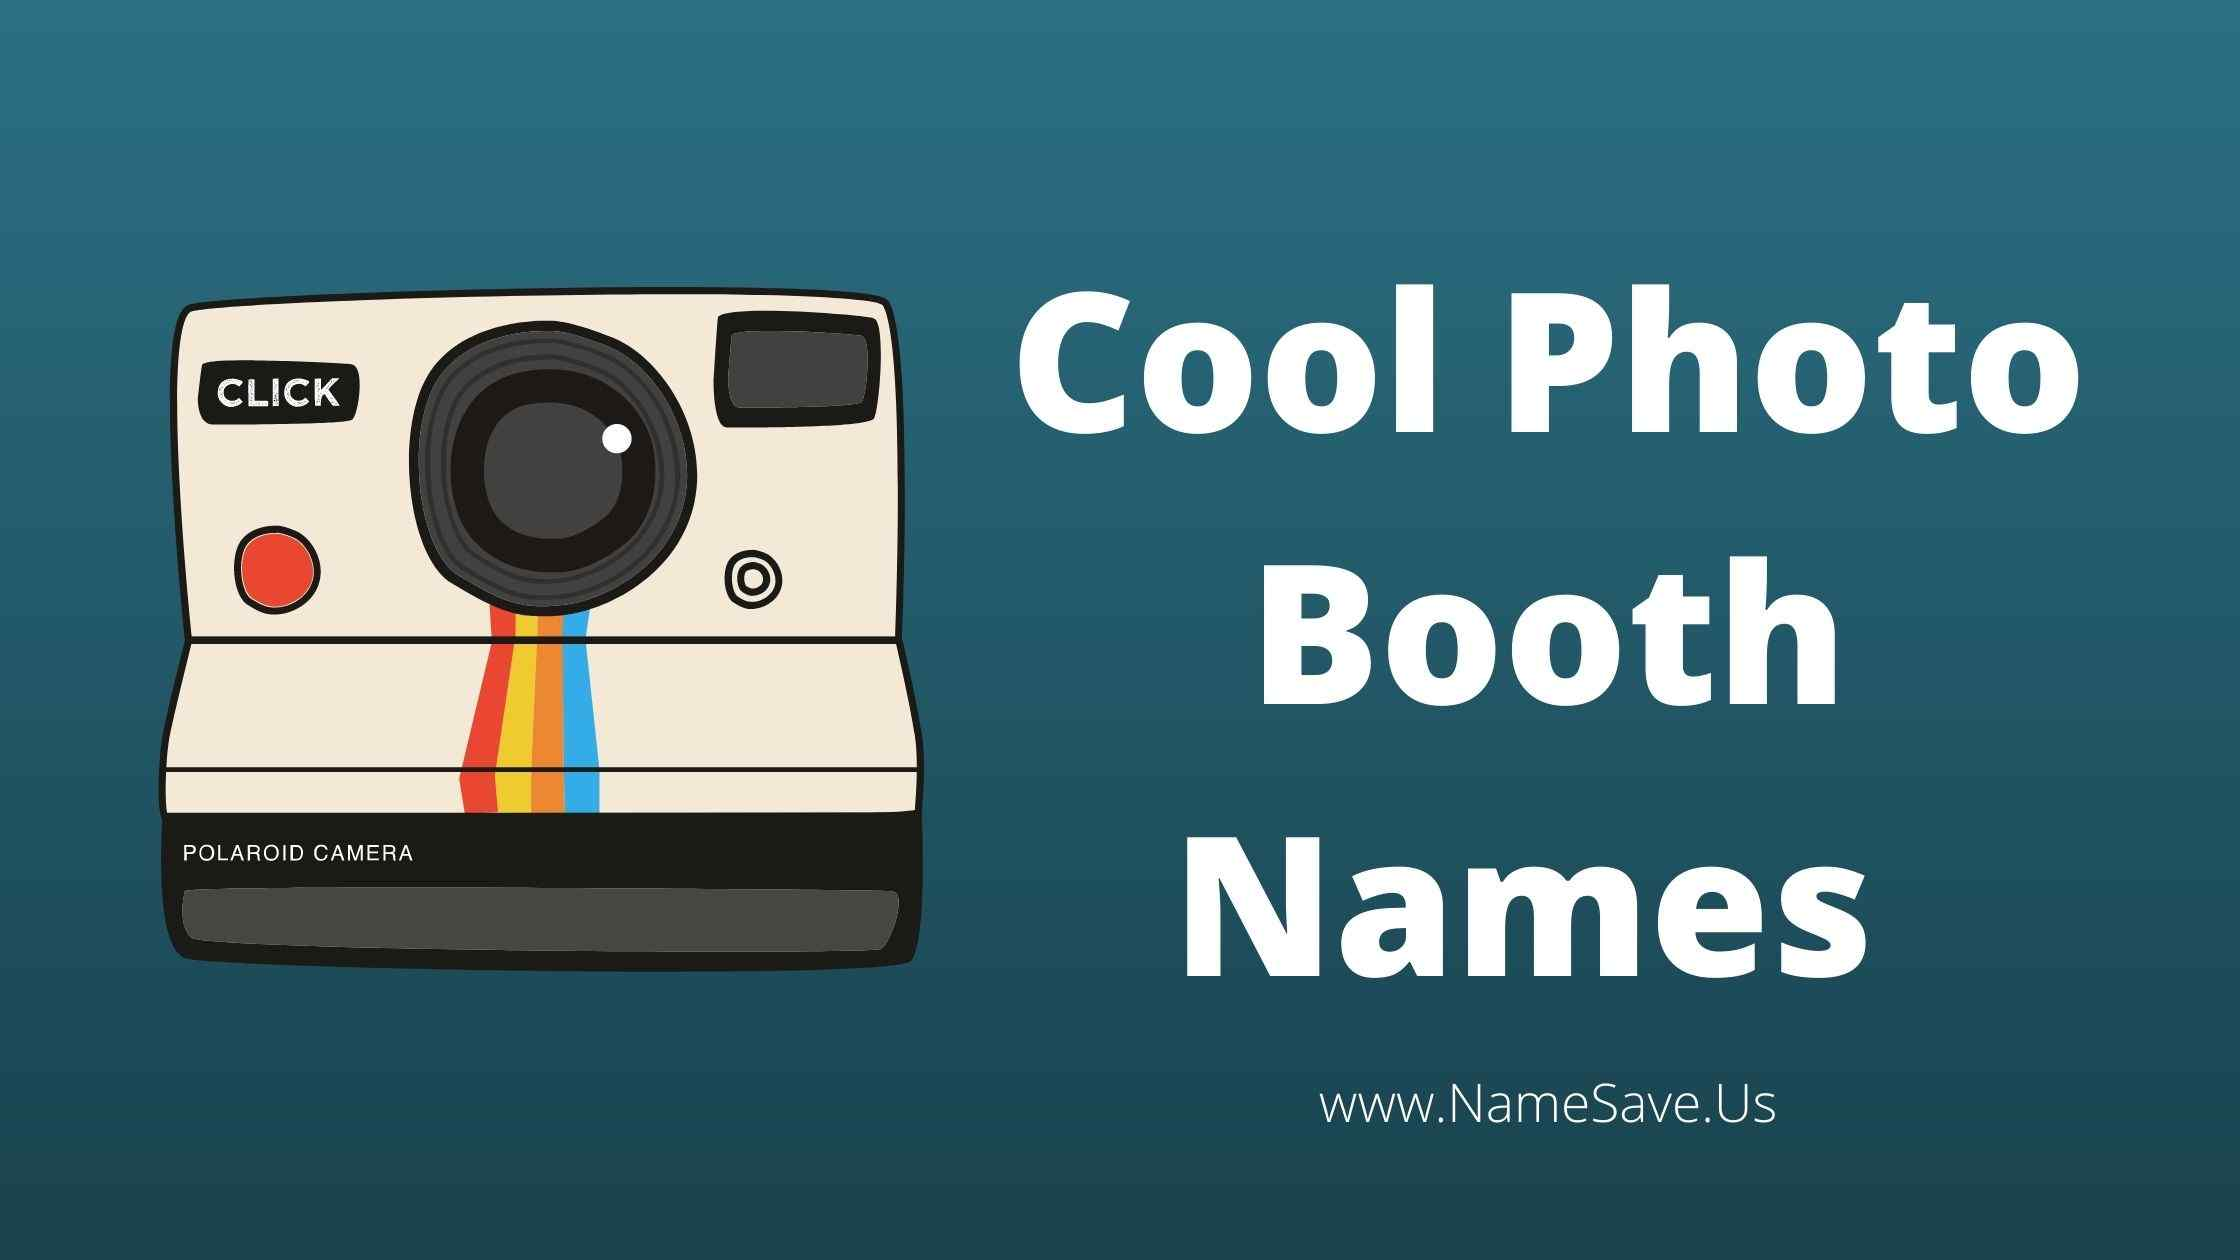 Cool Photo Booth Names